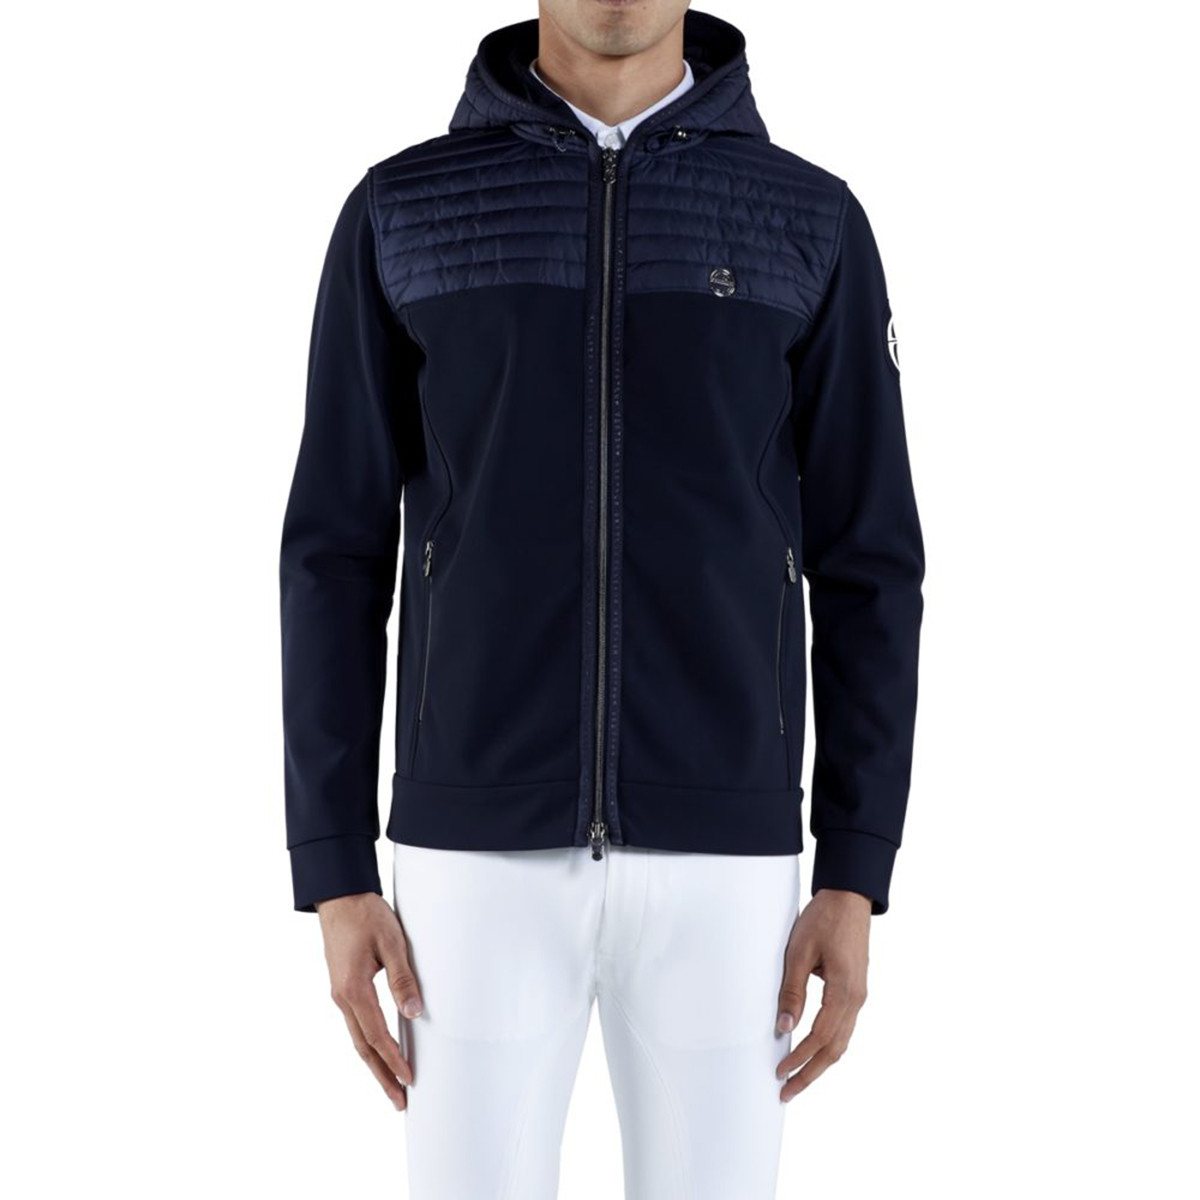 Vestrum Men's Warm Up Jacket Monterrey